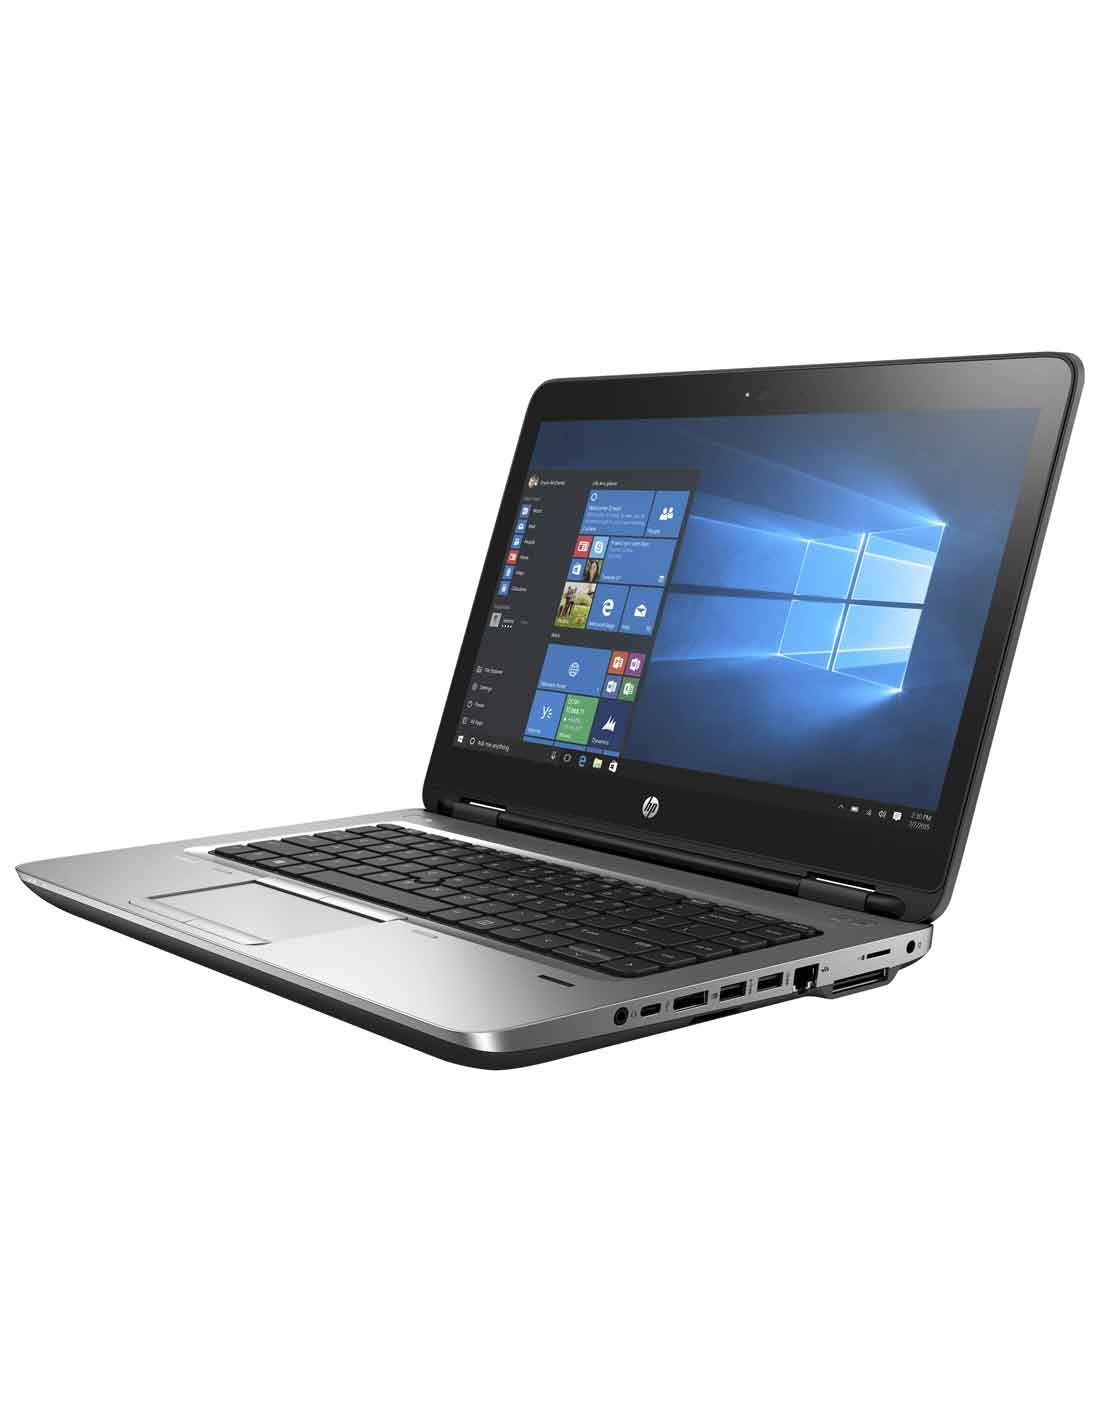 HP ProBook 640 G3 Notebook at the cheapest price and fast free delivery in Dubai